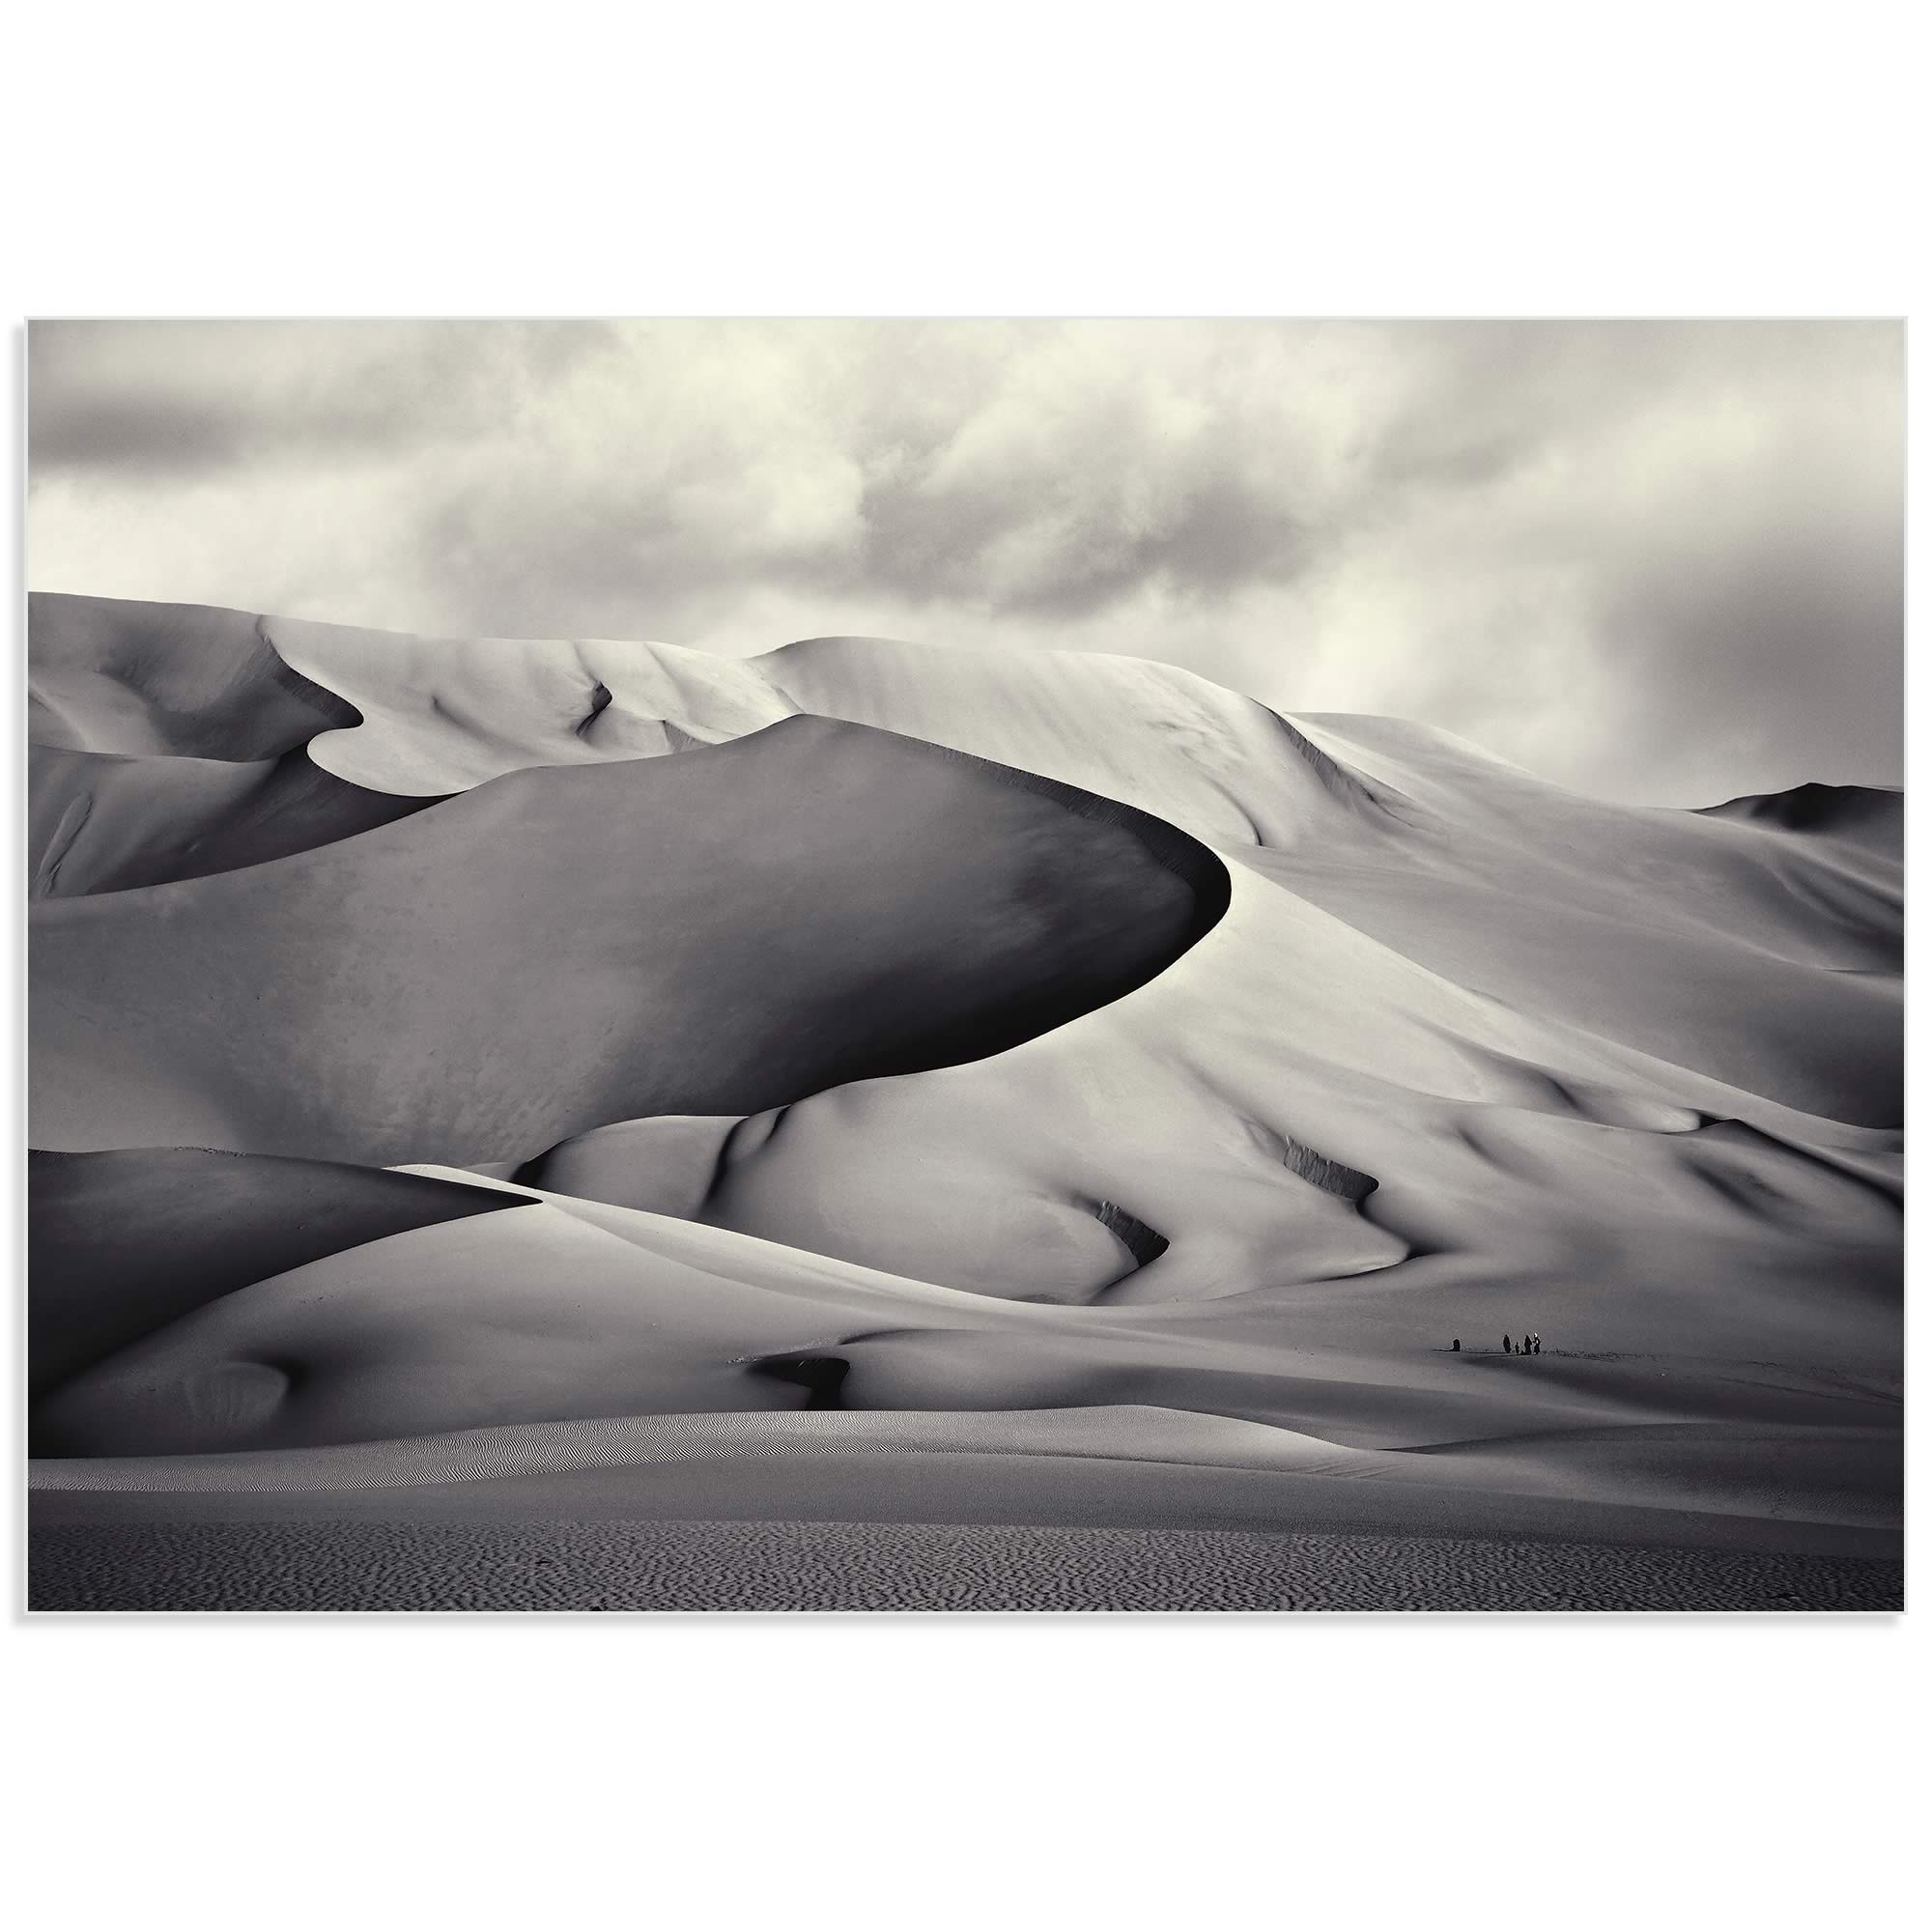 Desert Dunes by Manuel Vilches - Minimalist Photography on Metal or Acrylic - Alternate View 2